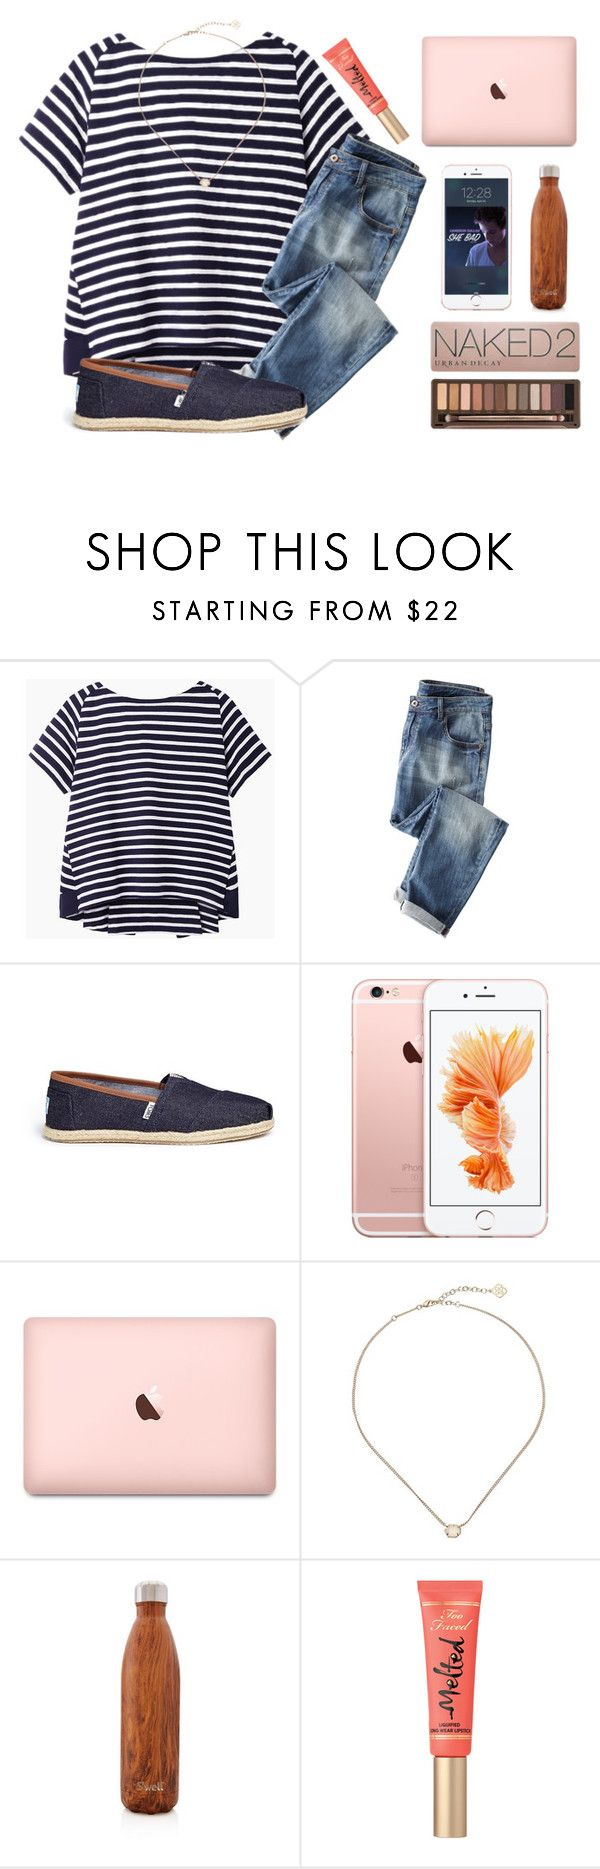 """No school today "" by kari-luvs-u-2 ❤ liked on Polyvore featuring Sacai Luck, Wrap, TOMS, Kendra Scott, S'well and Urban Decay"